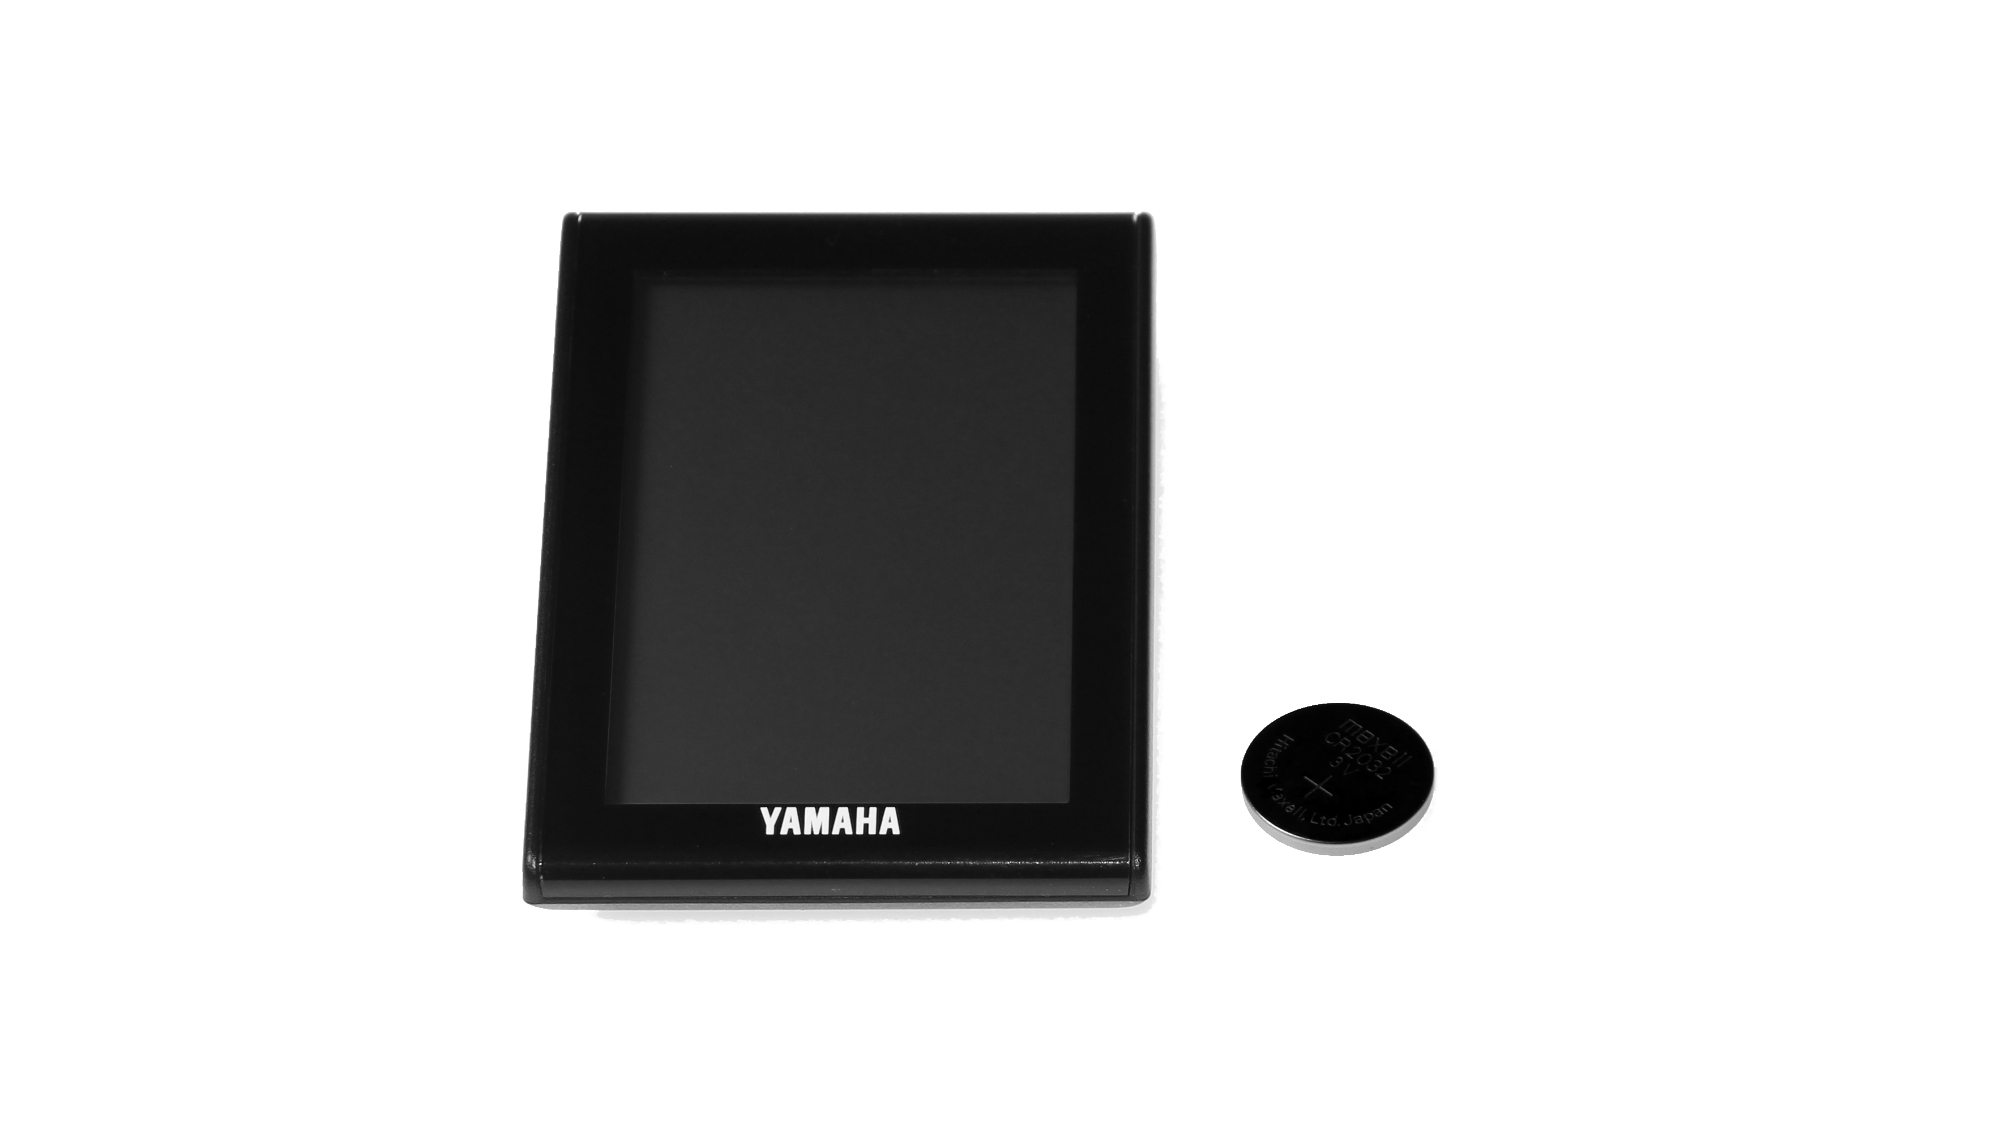 haibike sduro yamaha lcd display 2015. Black Bedroom Furniture Sets. Home Design Ideas